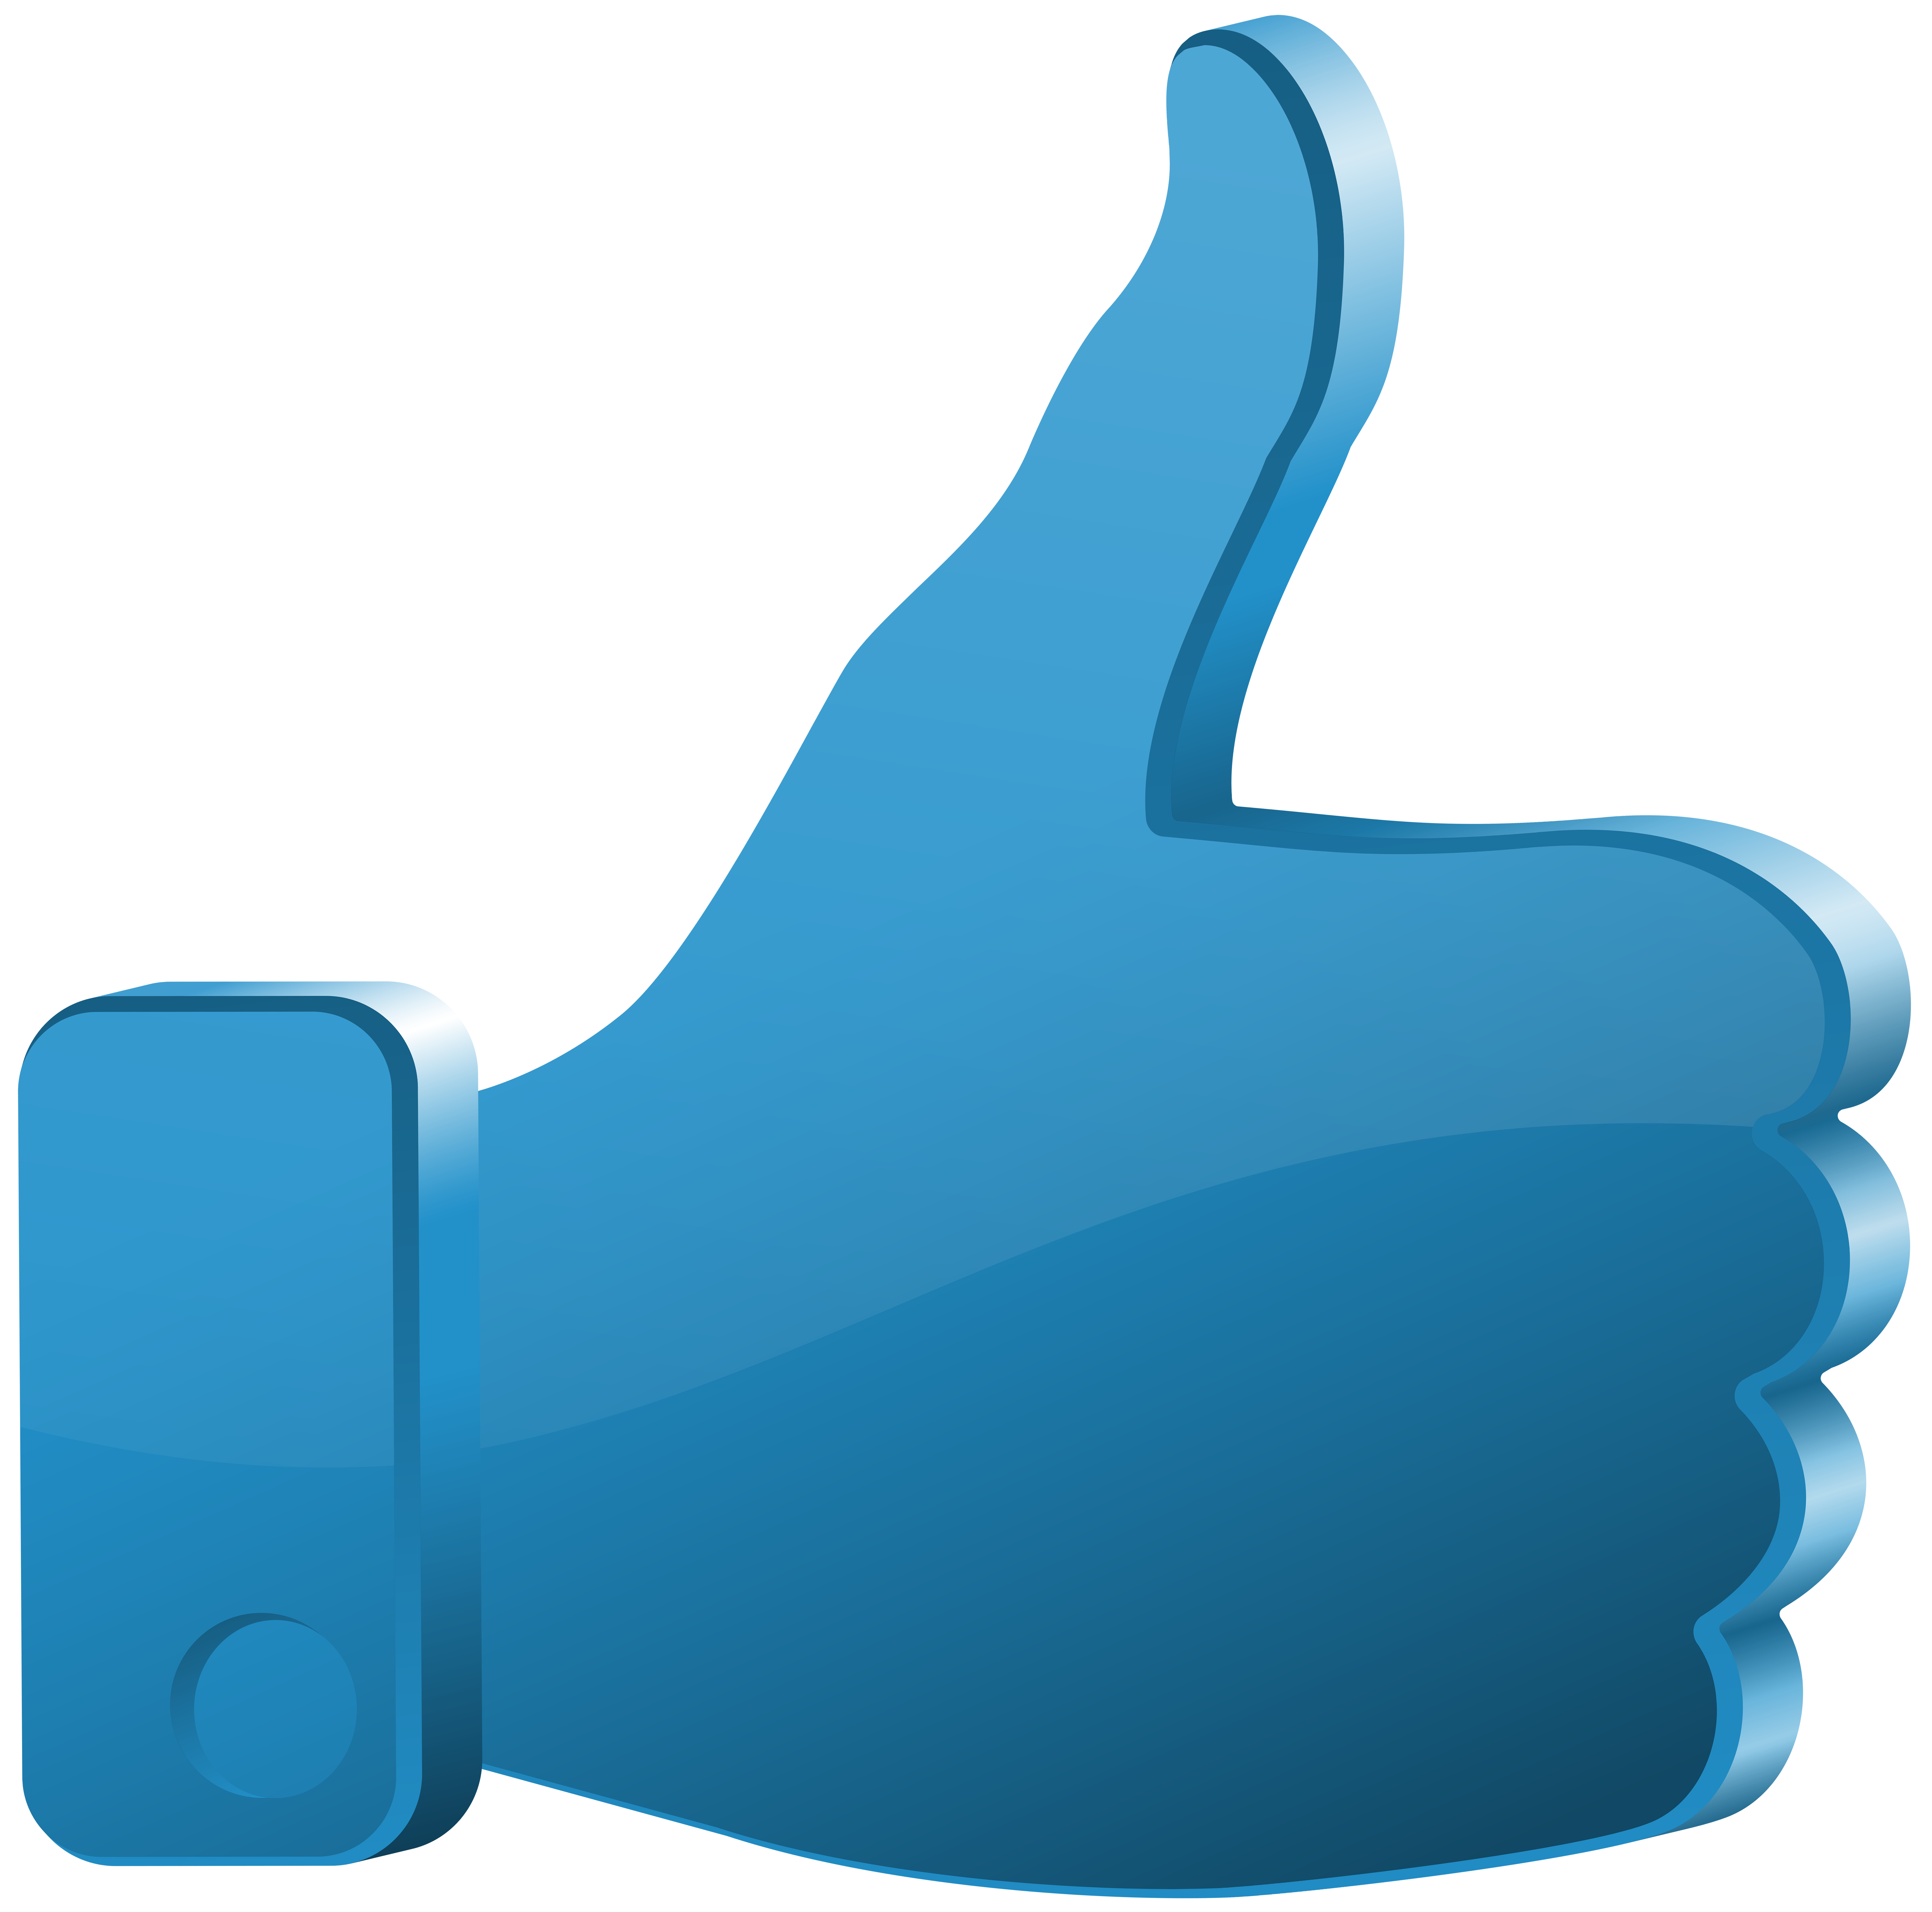 Clipart thumbs up png banner royalty free download Thumbs Up Blue Transparent Clip Art PNG Image | Gallery ... banner royalty free download